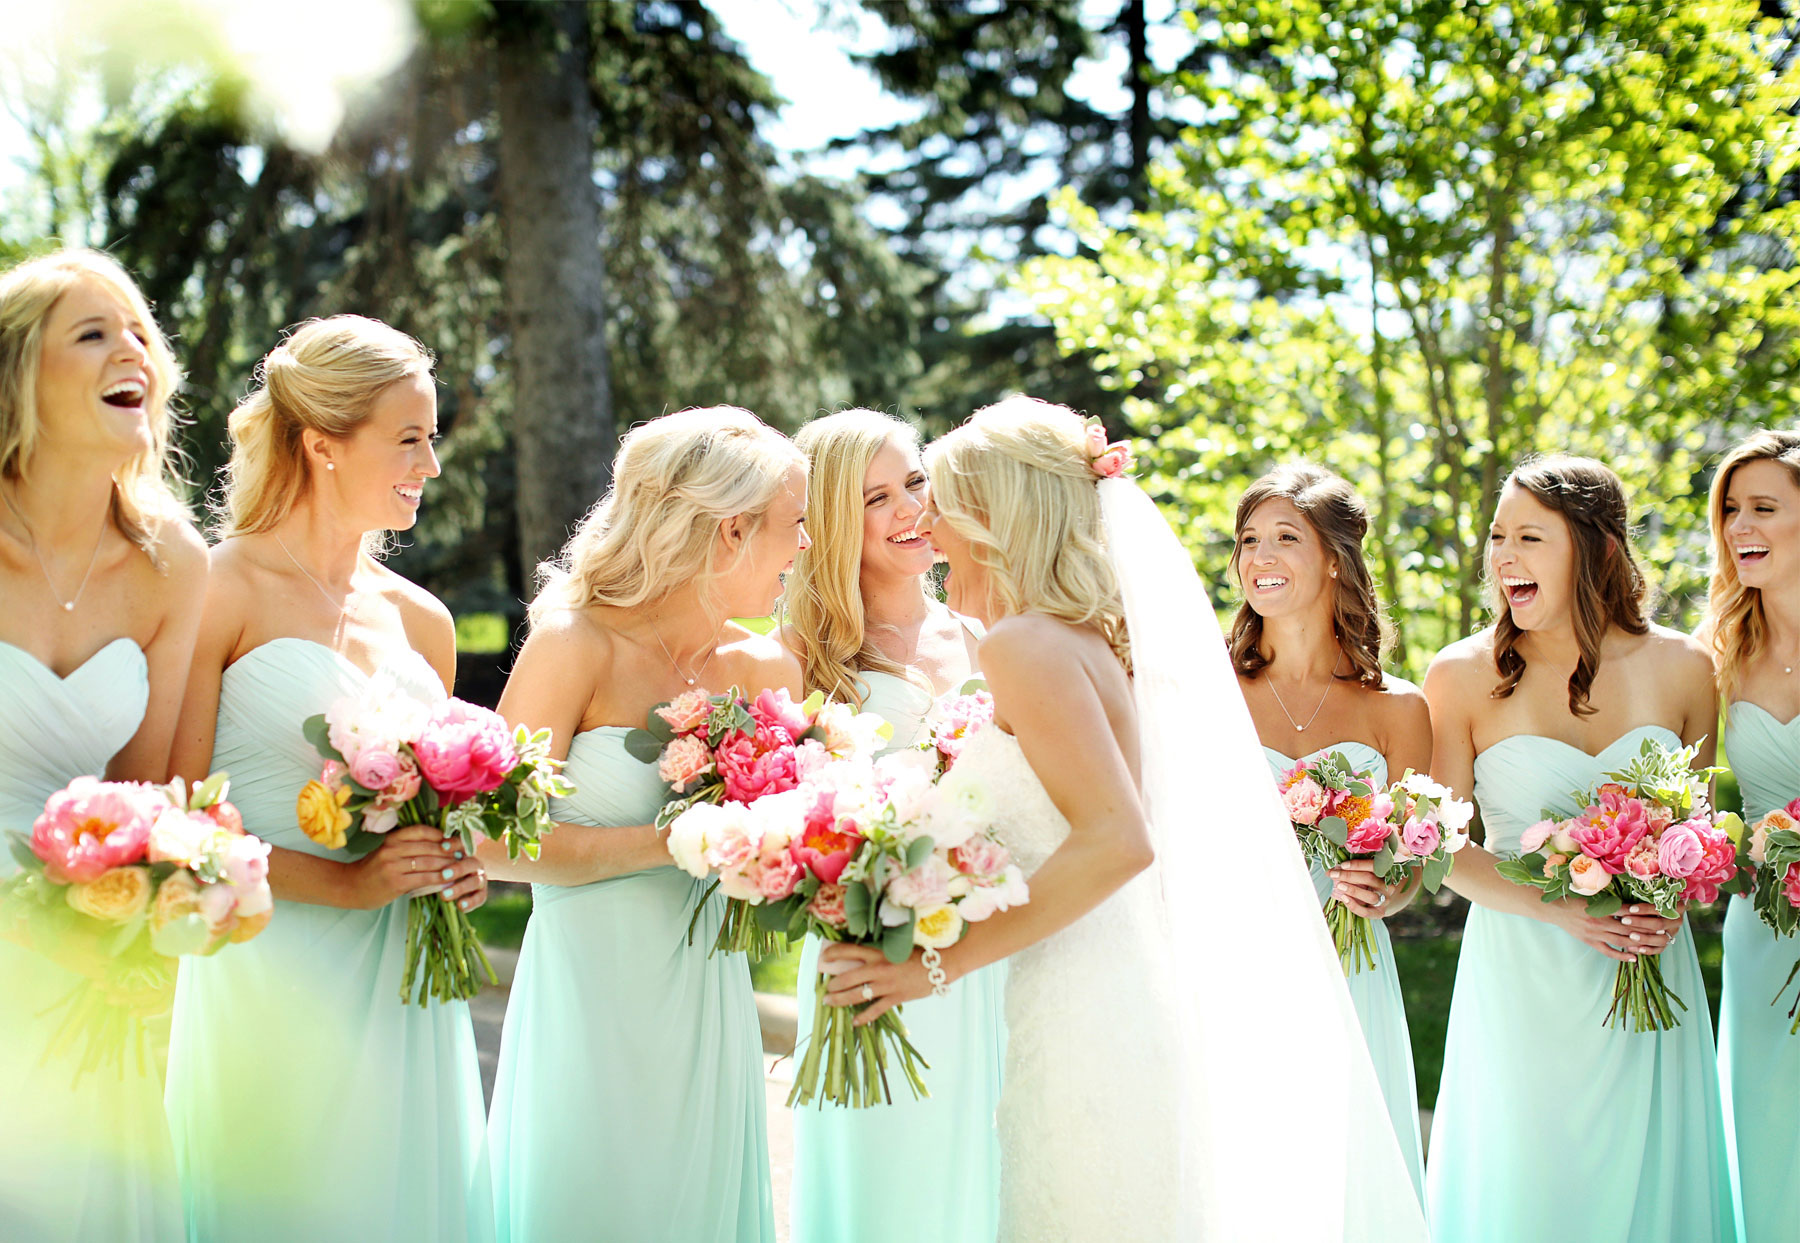 09-Minneapolis-Minnesota-Wedding-Photography-by-Vick-Photography-at-Minikahda-Country-Club-Bridesmaids-Sarah-&-Chad.jpg